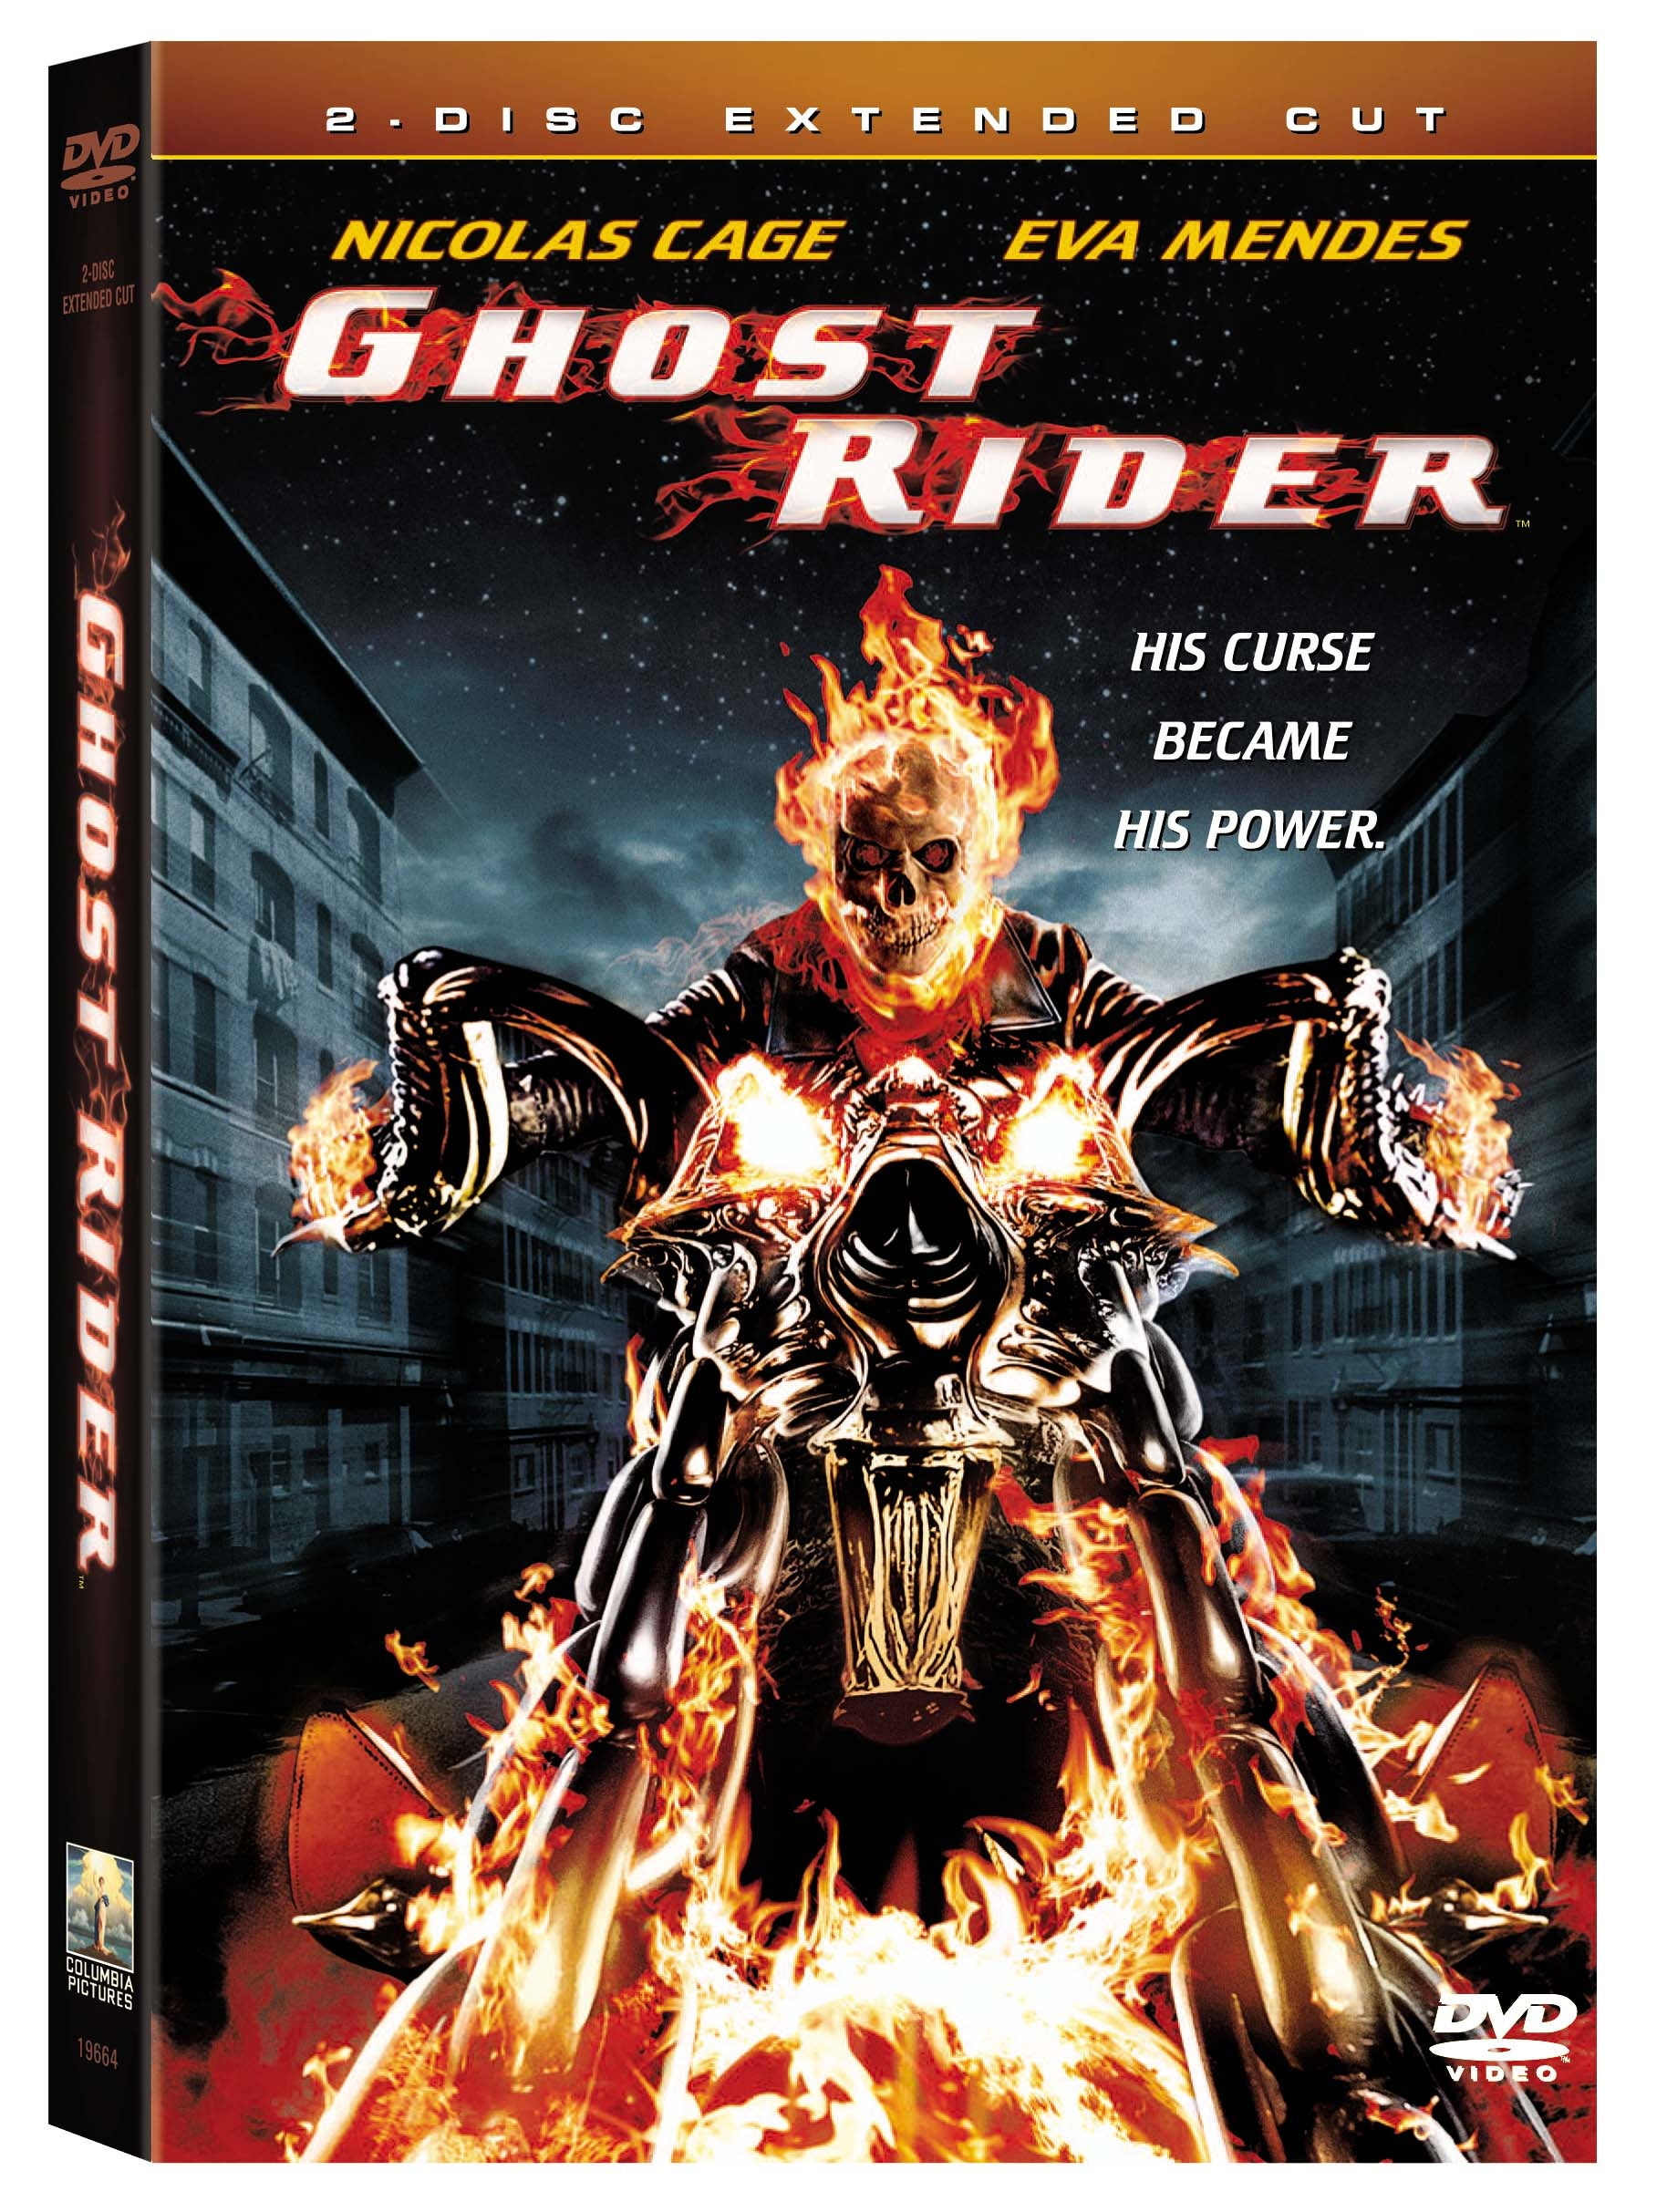 Ghost Rider 2 Disc Extended Cut IGN Page 2